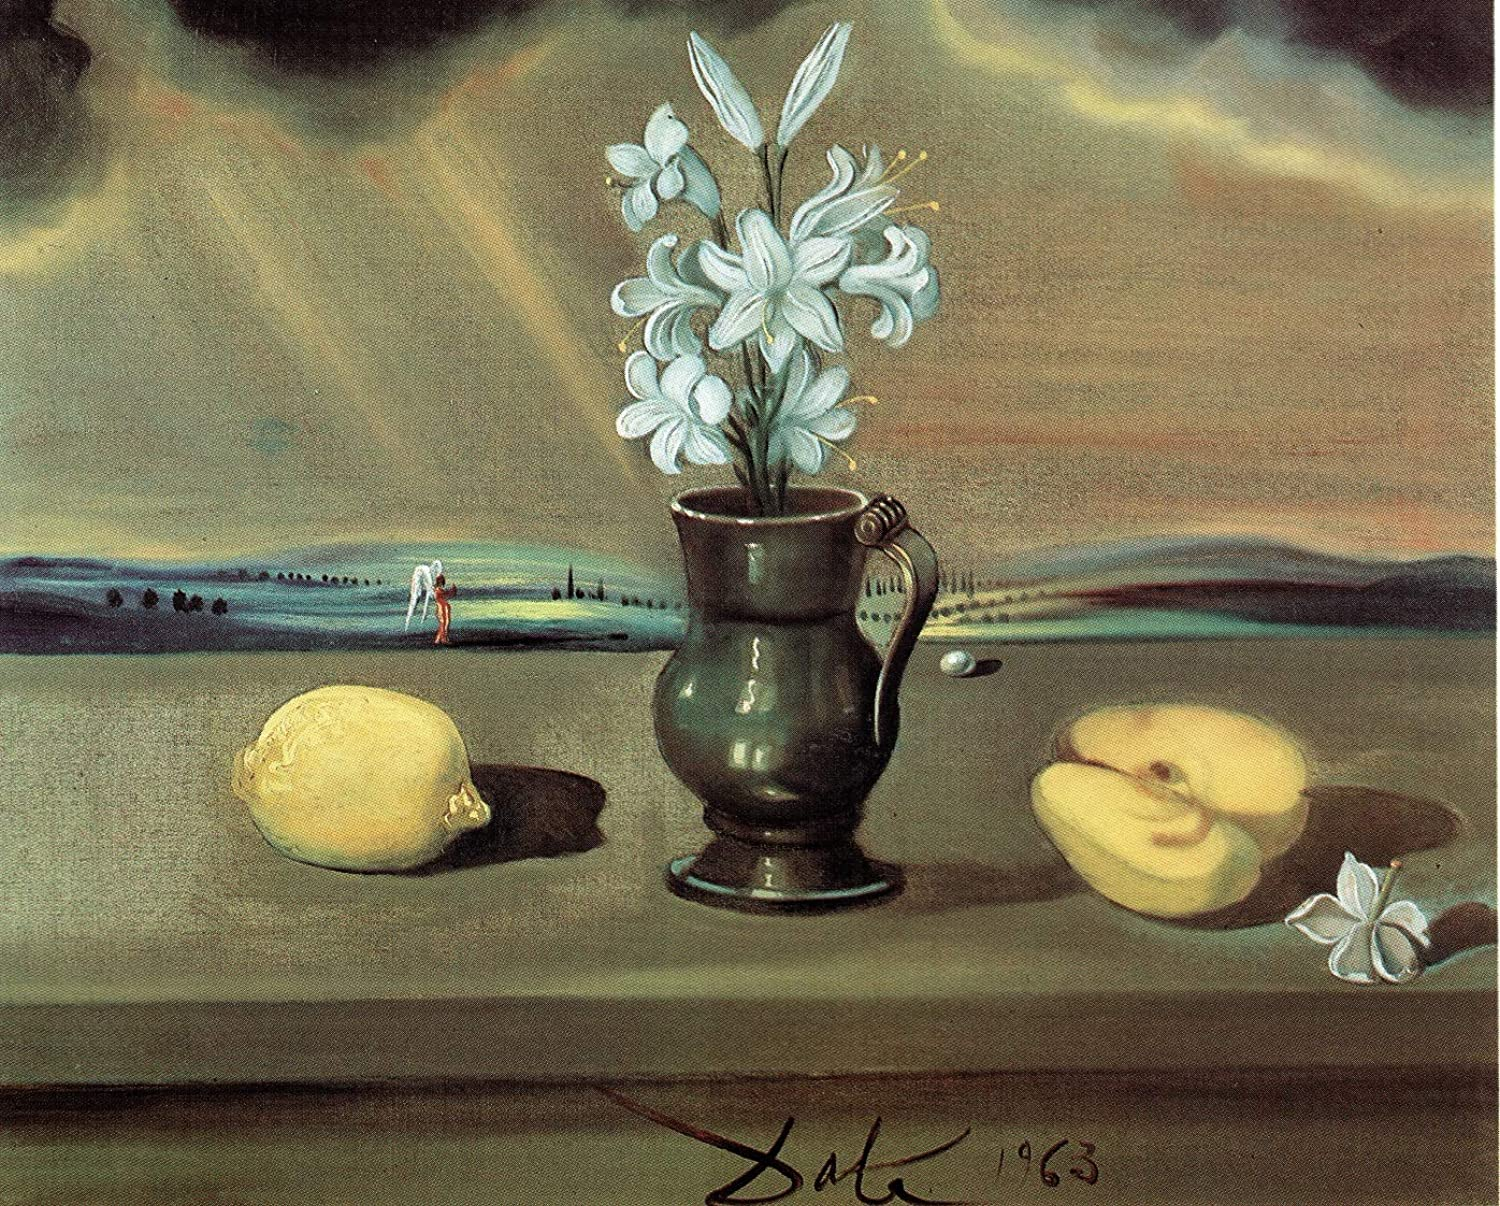 Black Creations Untitled(still life with Lilies) Salvador Dali 1963 Poster Canvas Picture Art Print Premium Quality A0 A1 A2 A3 A4 (A0 Canvas (30 40))